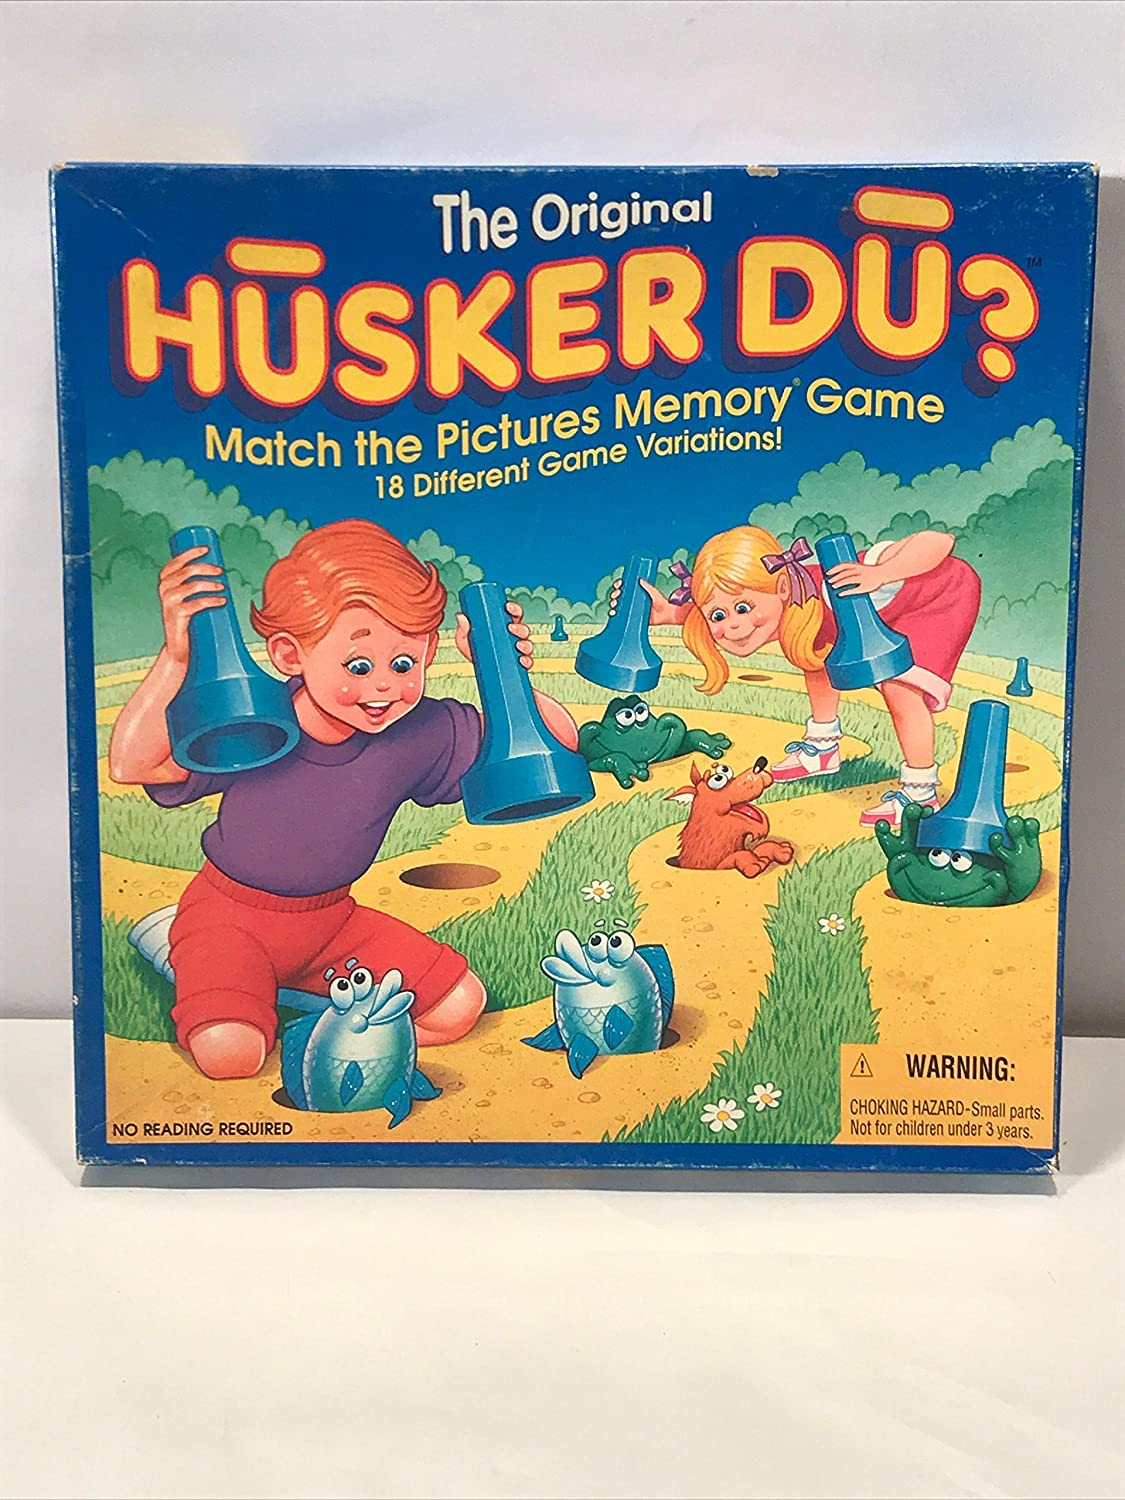 Match the Pictures Memory Game The Original Husker Du